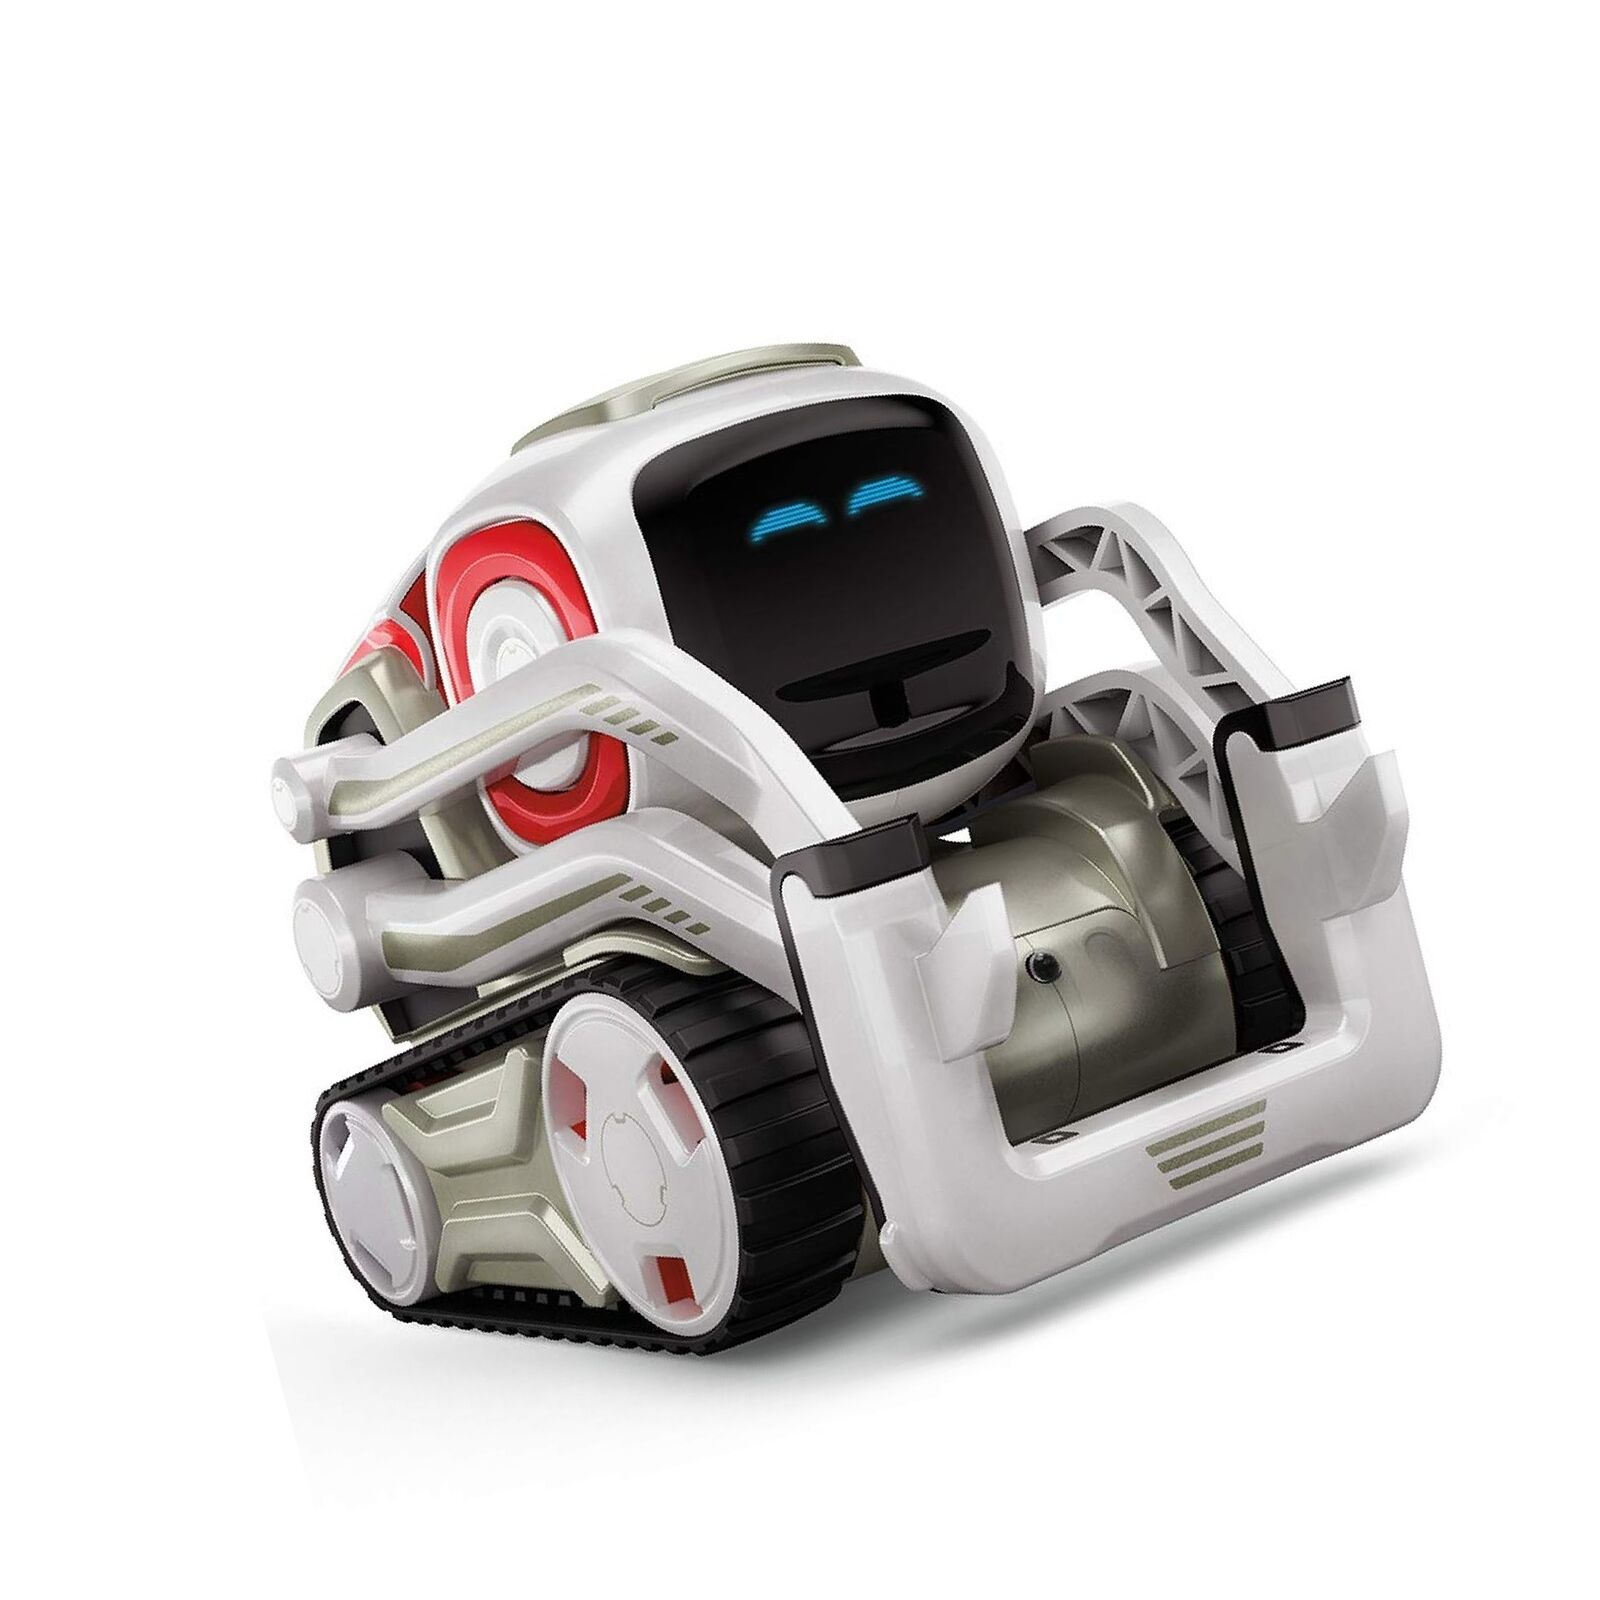 Anki Cozmo, A Fun, Educational Toy Robot for Kids Cozmo  rosso &  Top Daily Deal